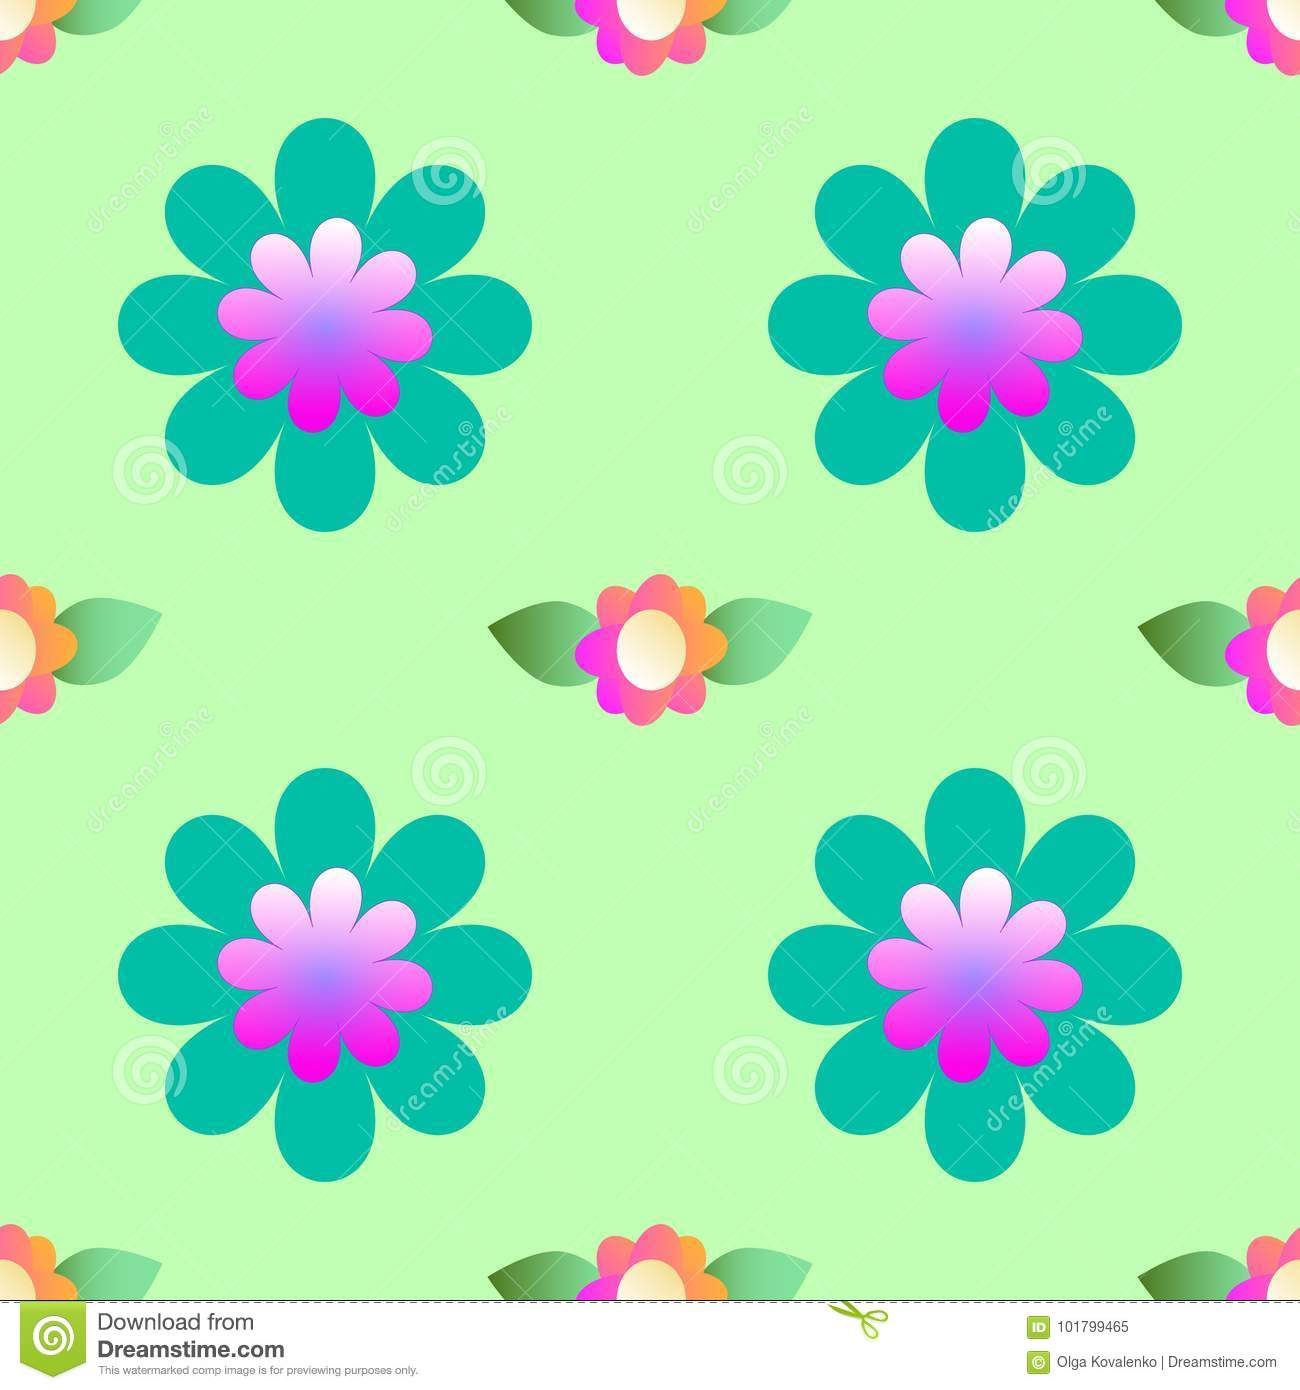 Abstract flowers on a green background, seamless pattern